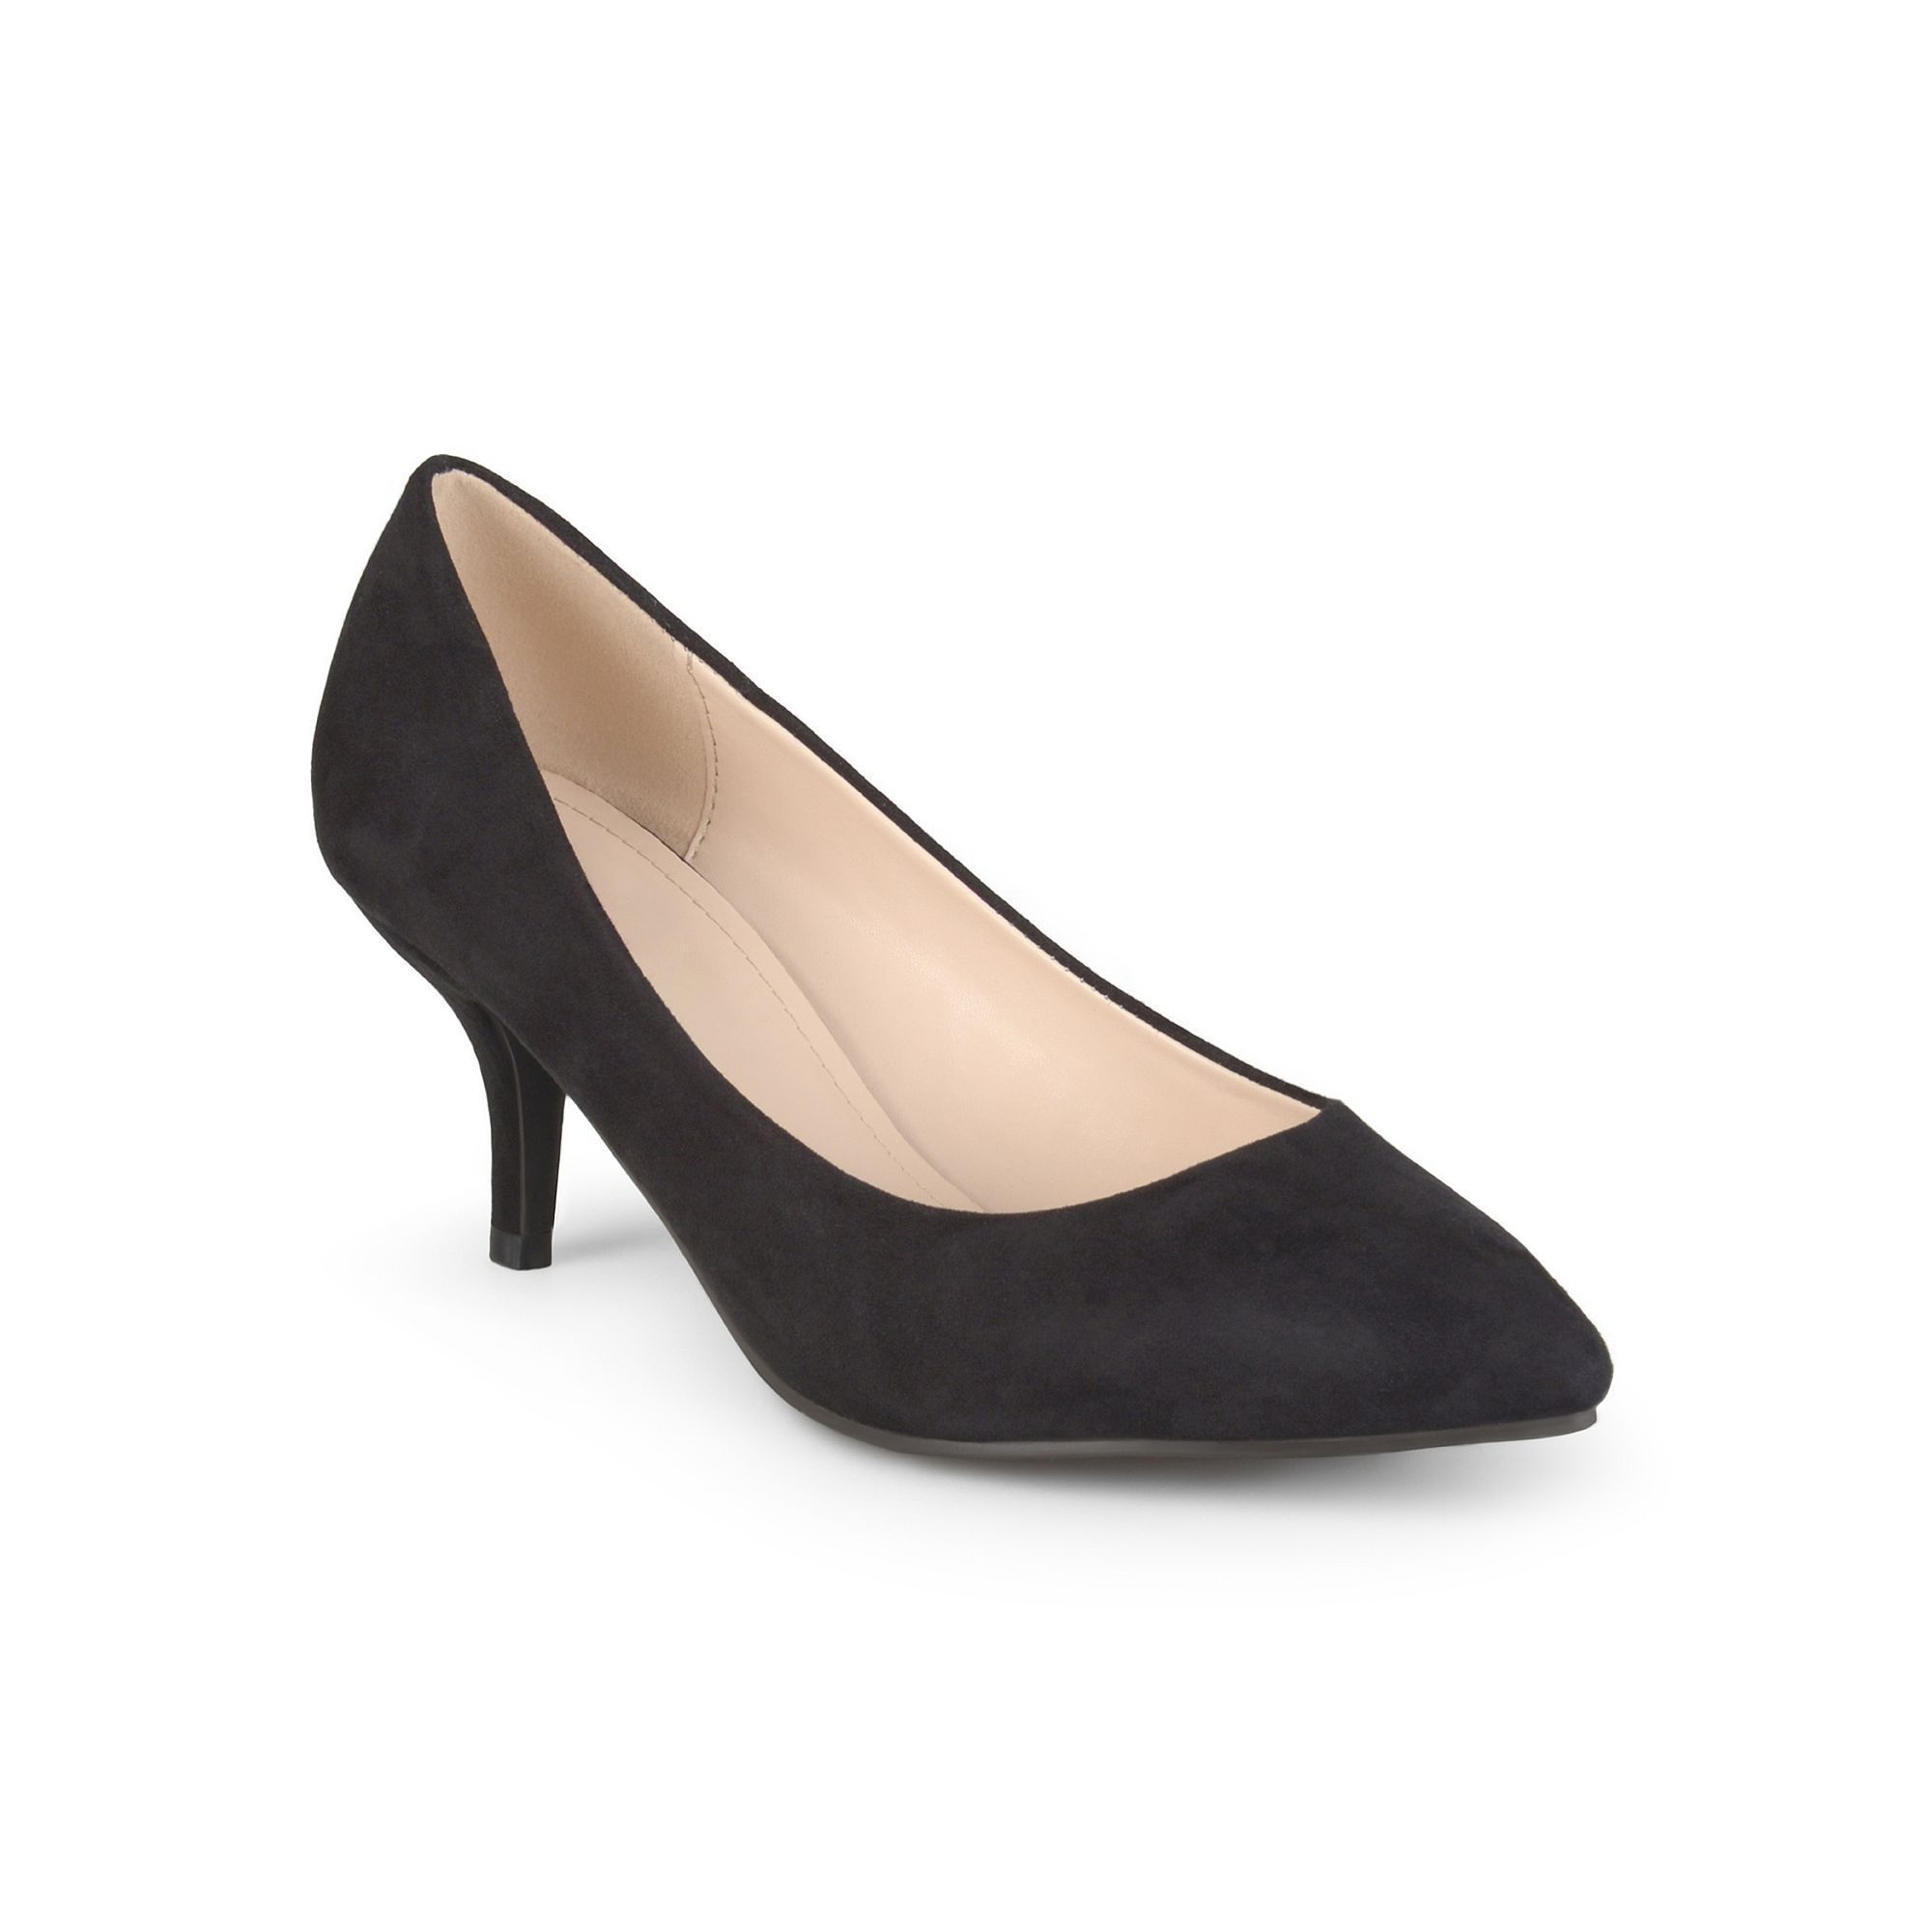 Journee Collection Tina ... Women's High Heels buy cheap reliable pay with visa limited edition for sale zDABJfy